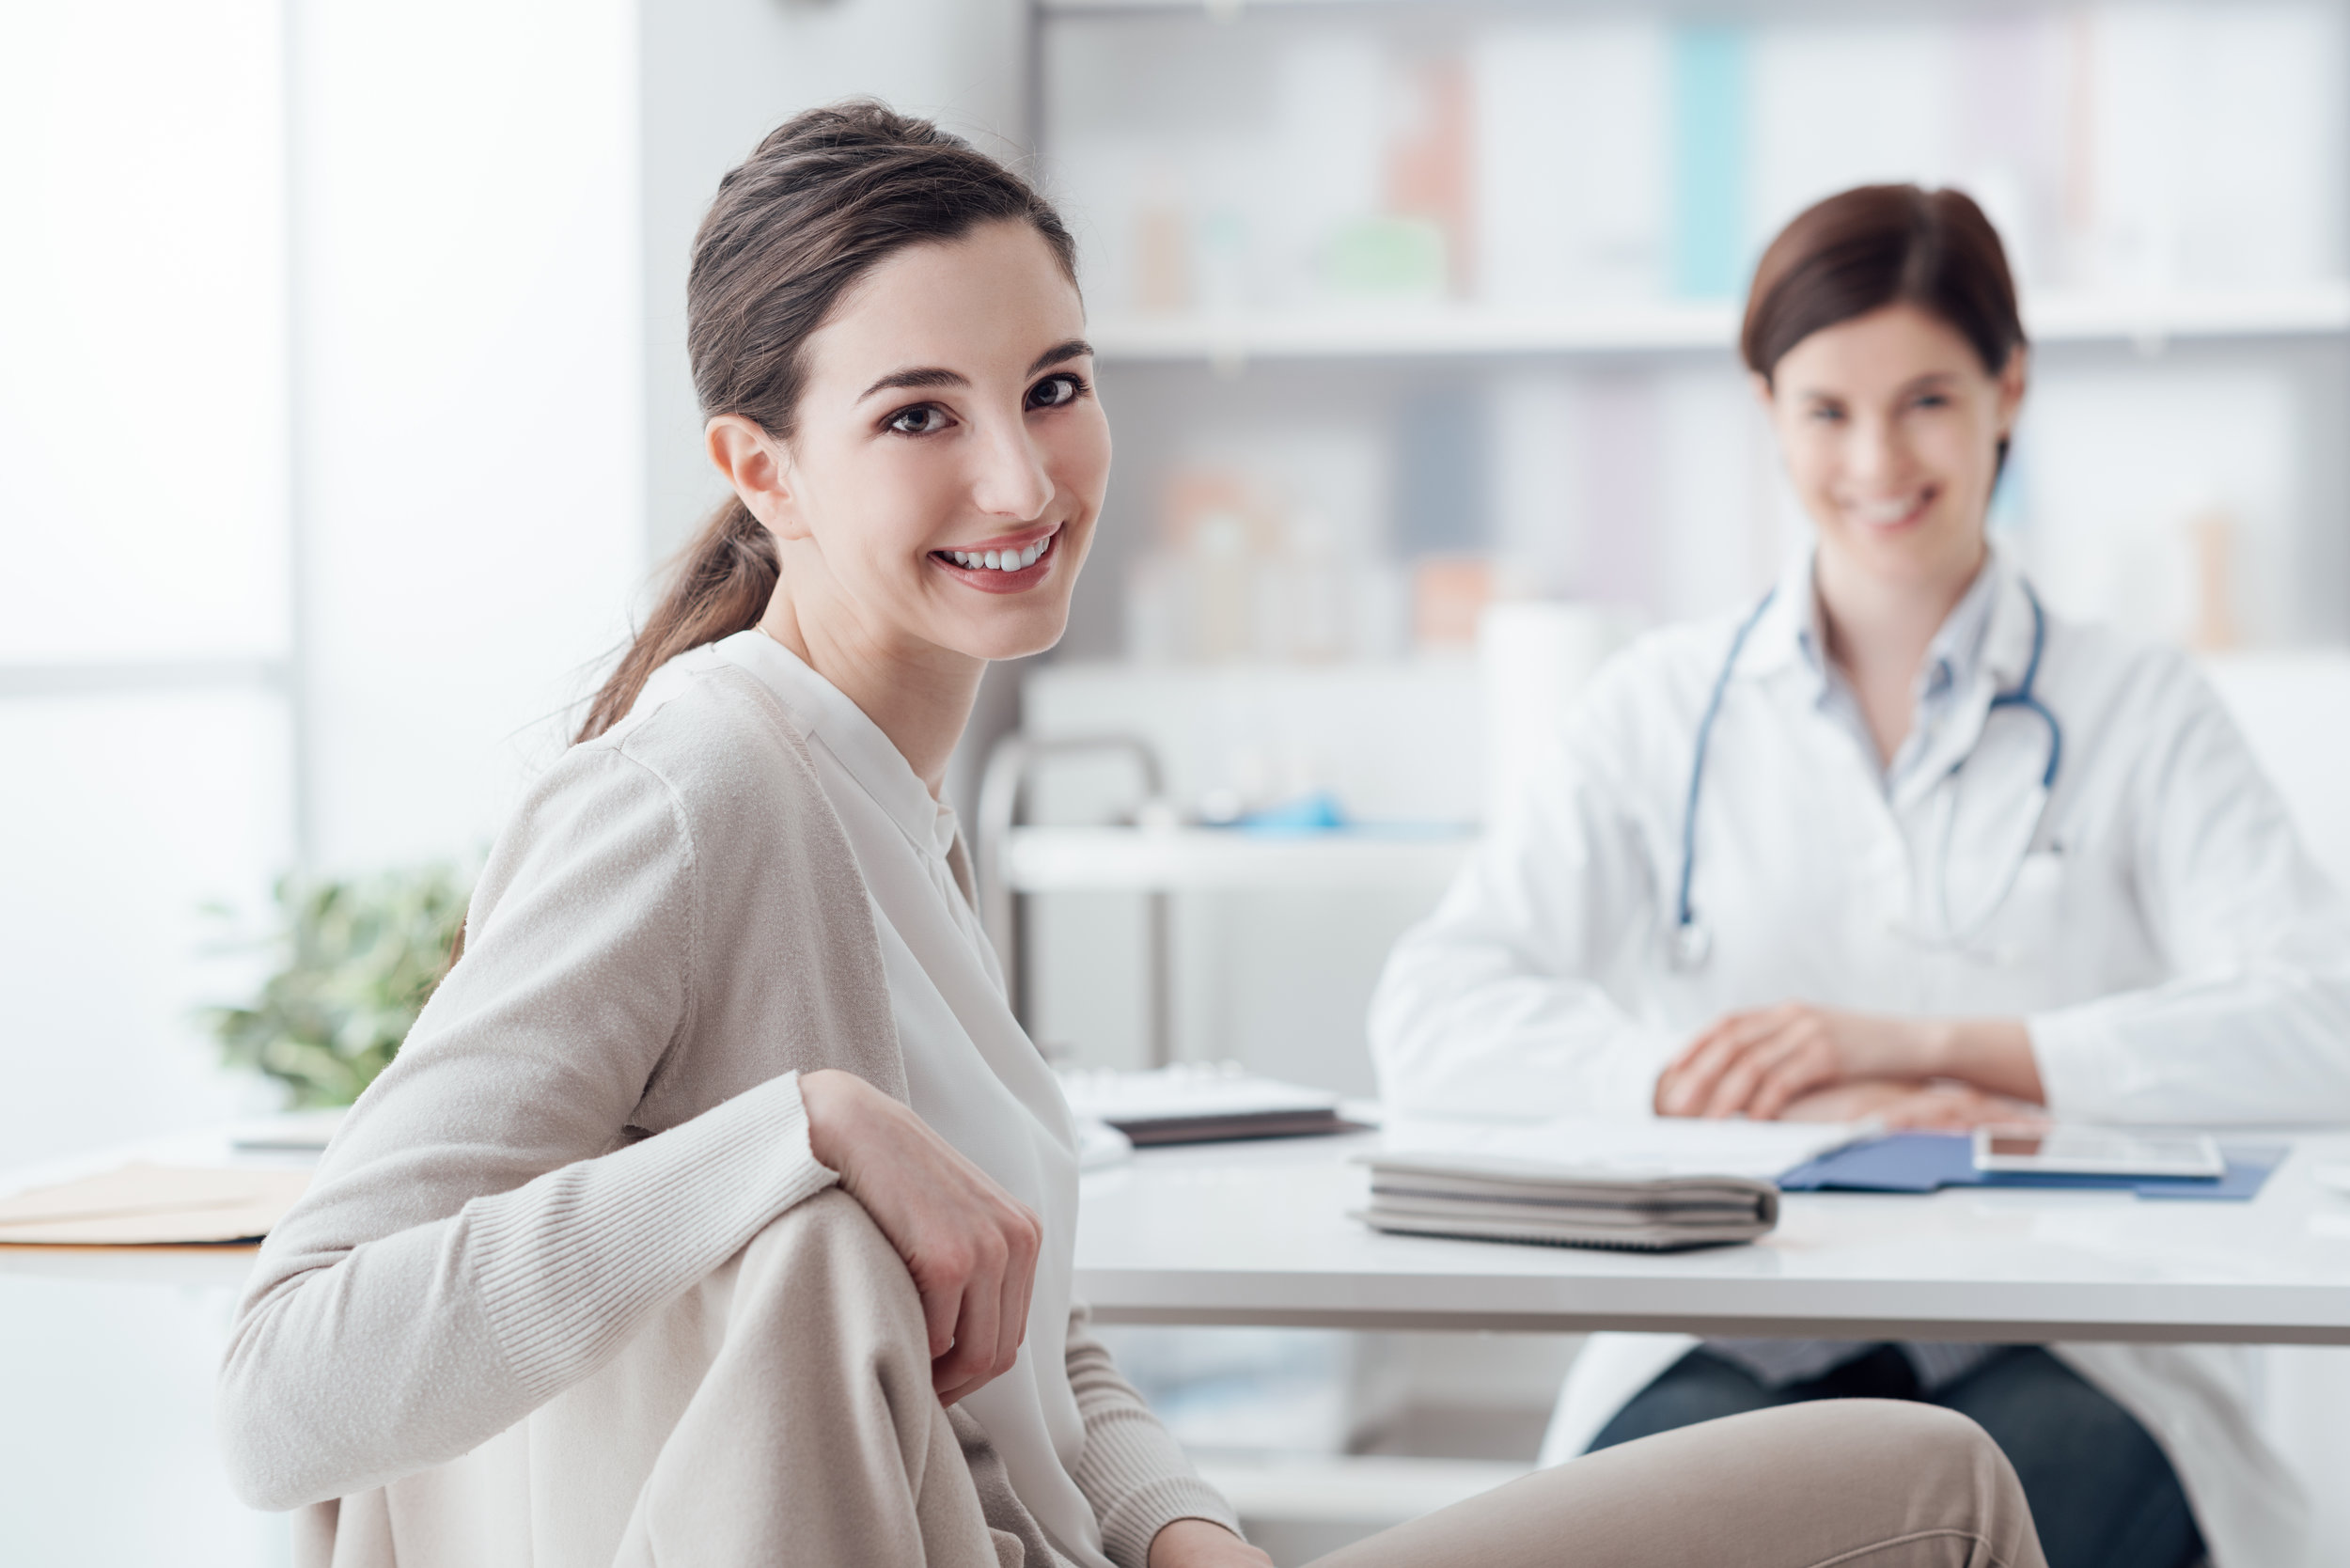 smiling patient with doctor.jpg